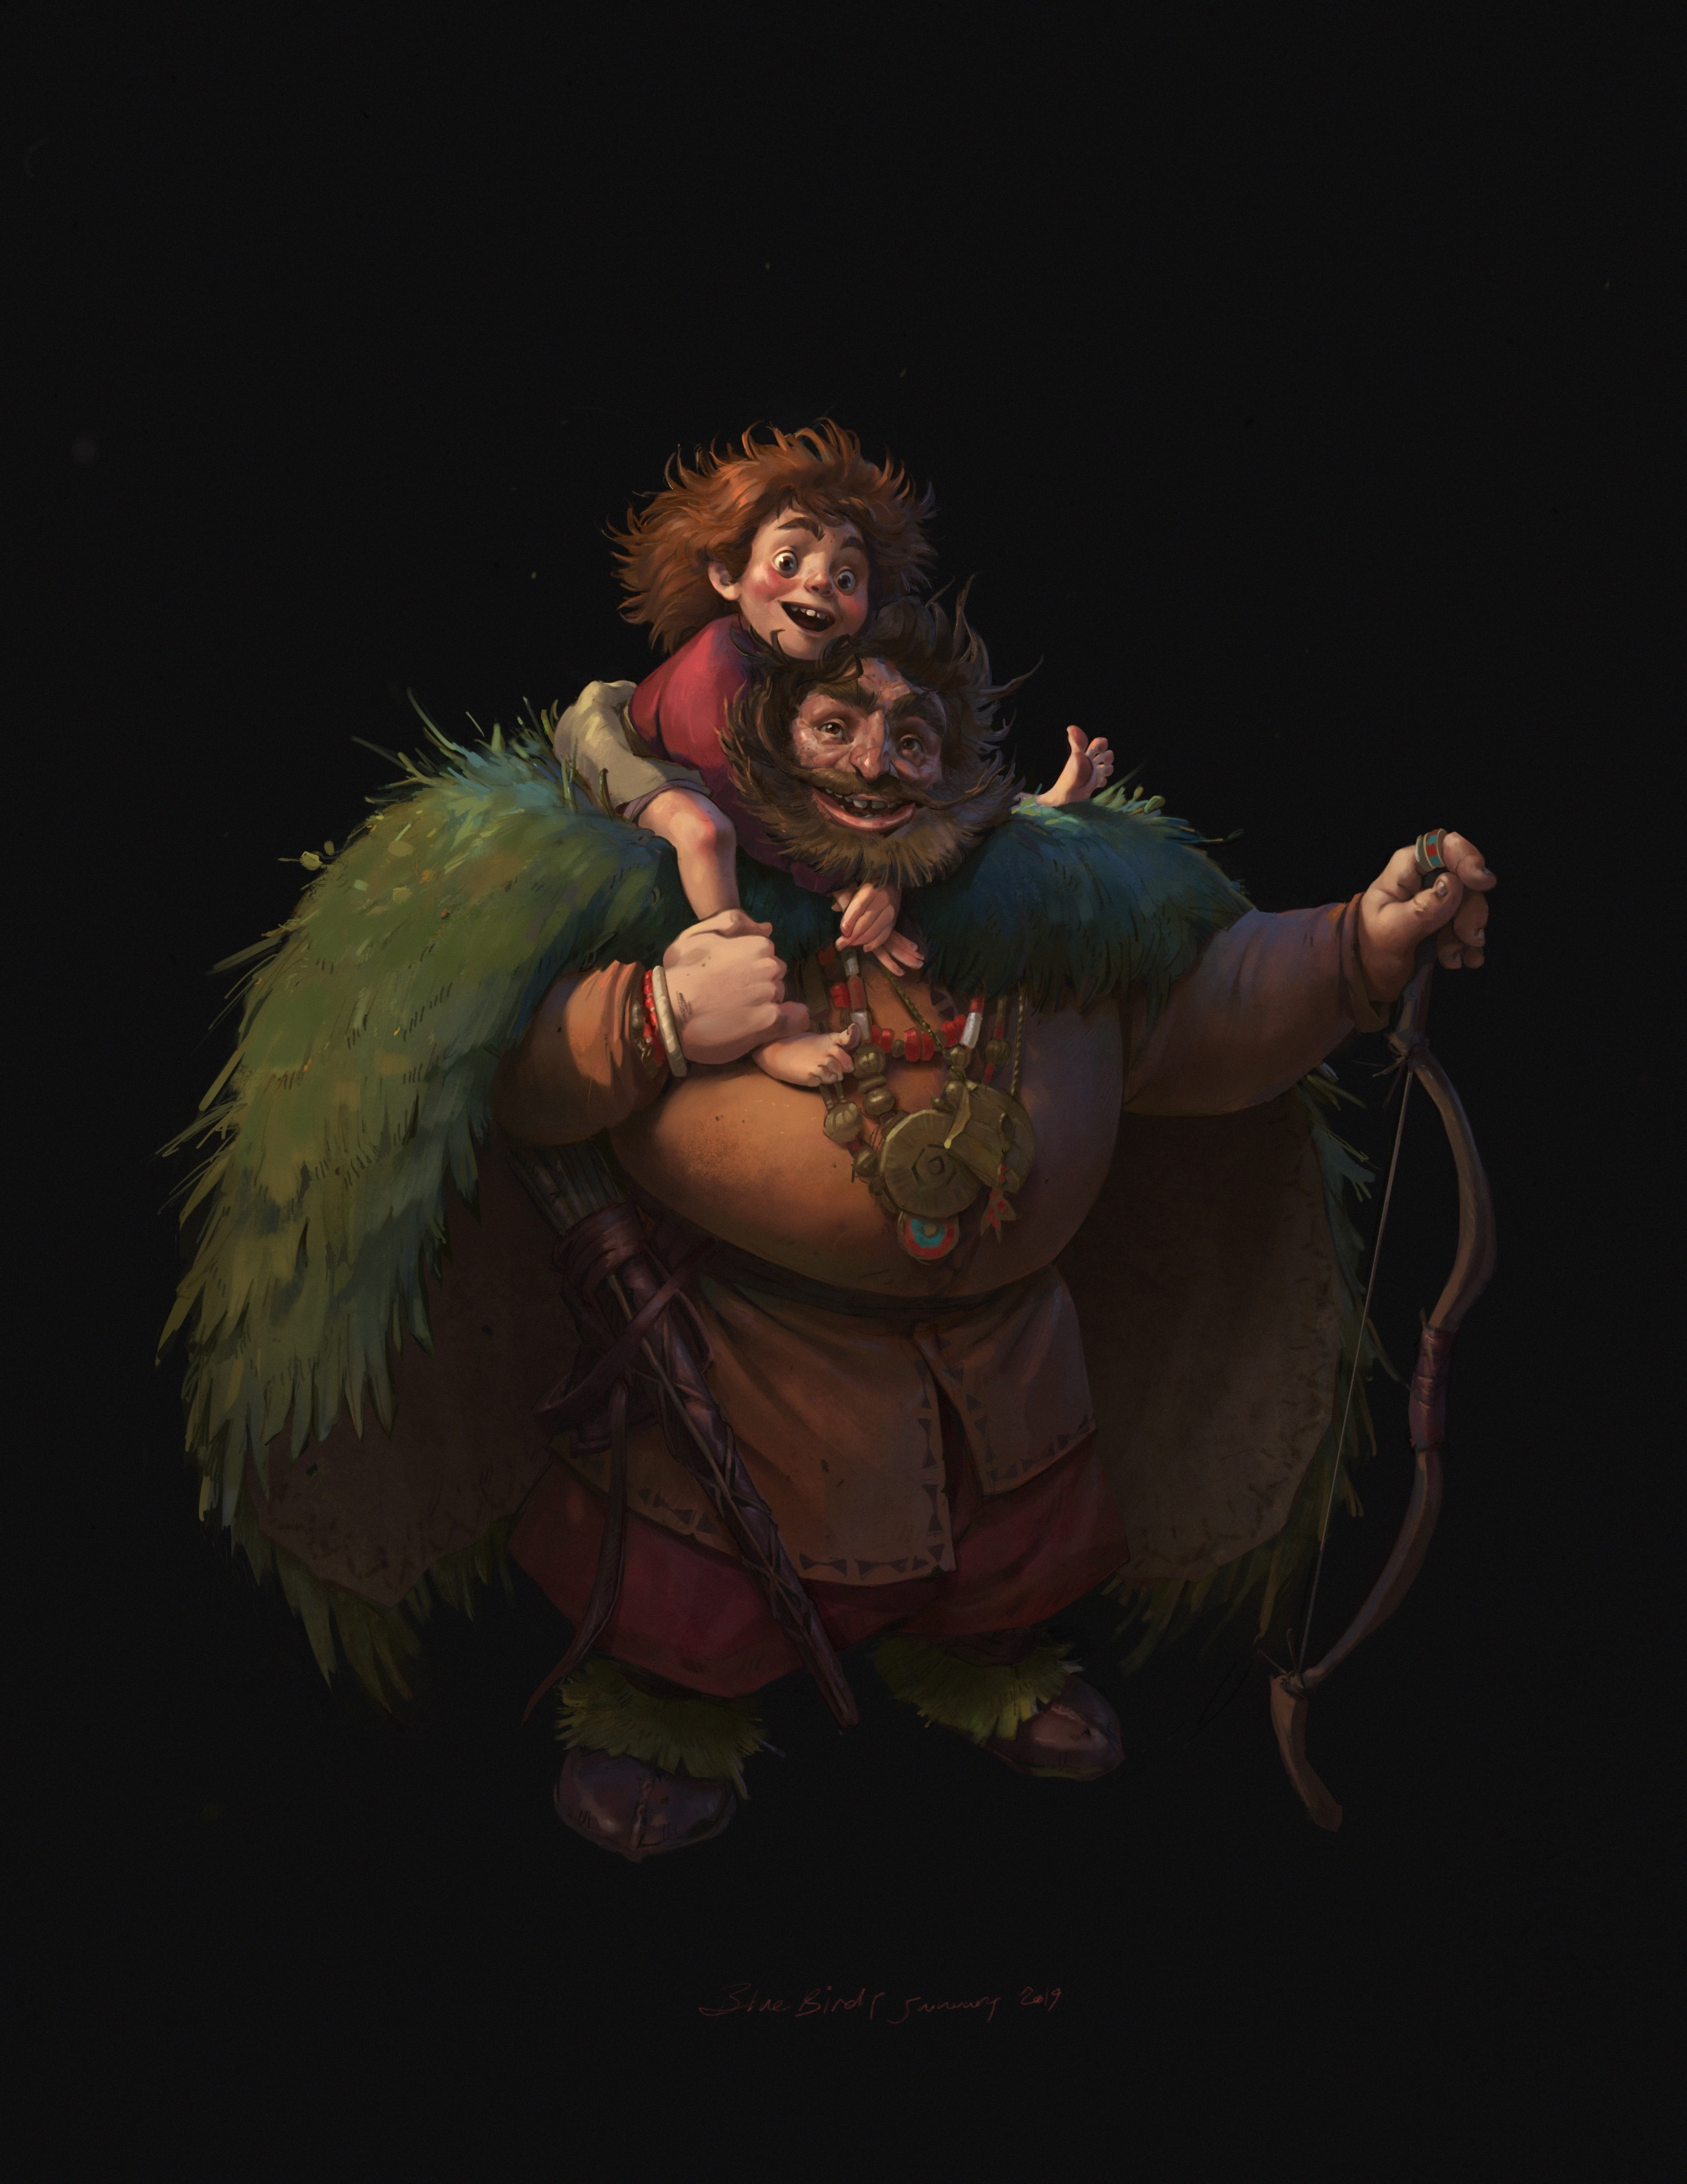 'Ronja and Mattis' for the story ''Ronja the robber's daughter''